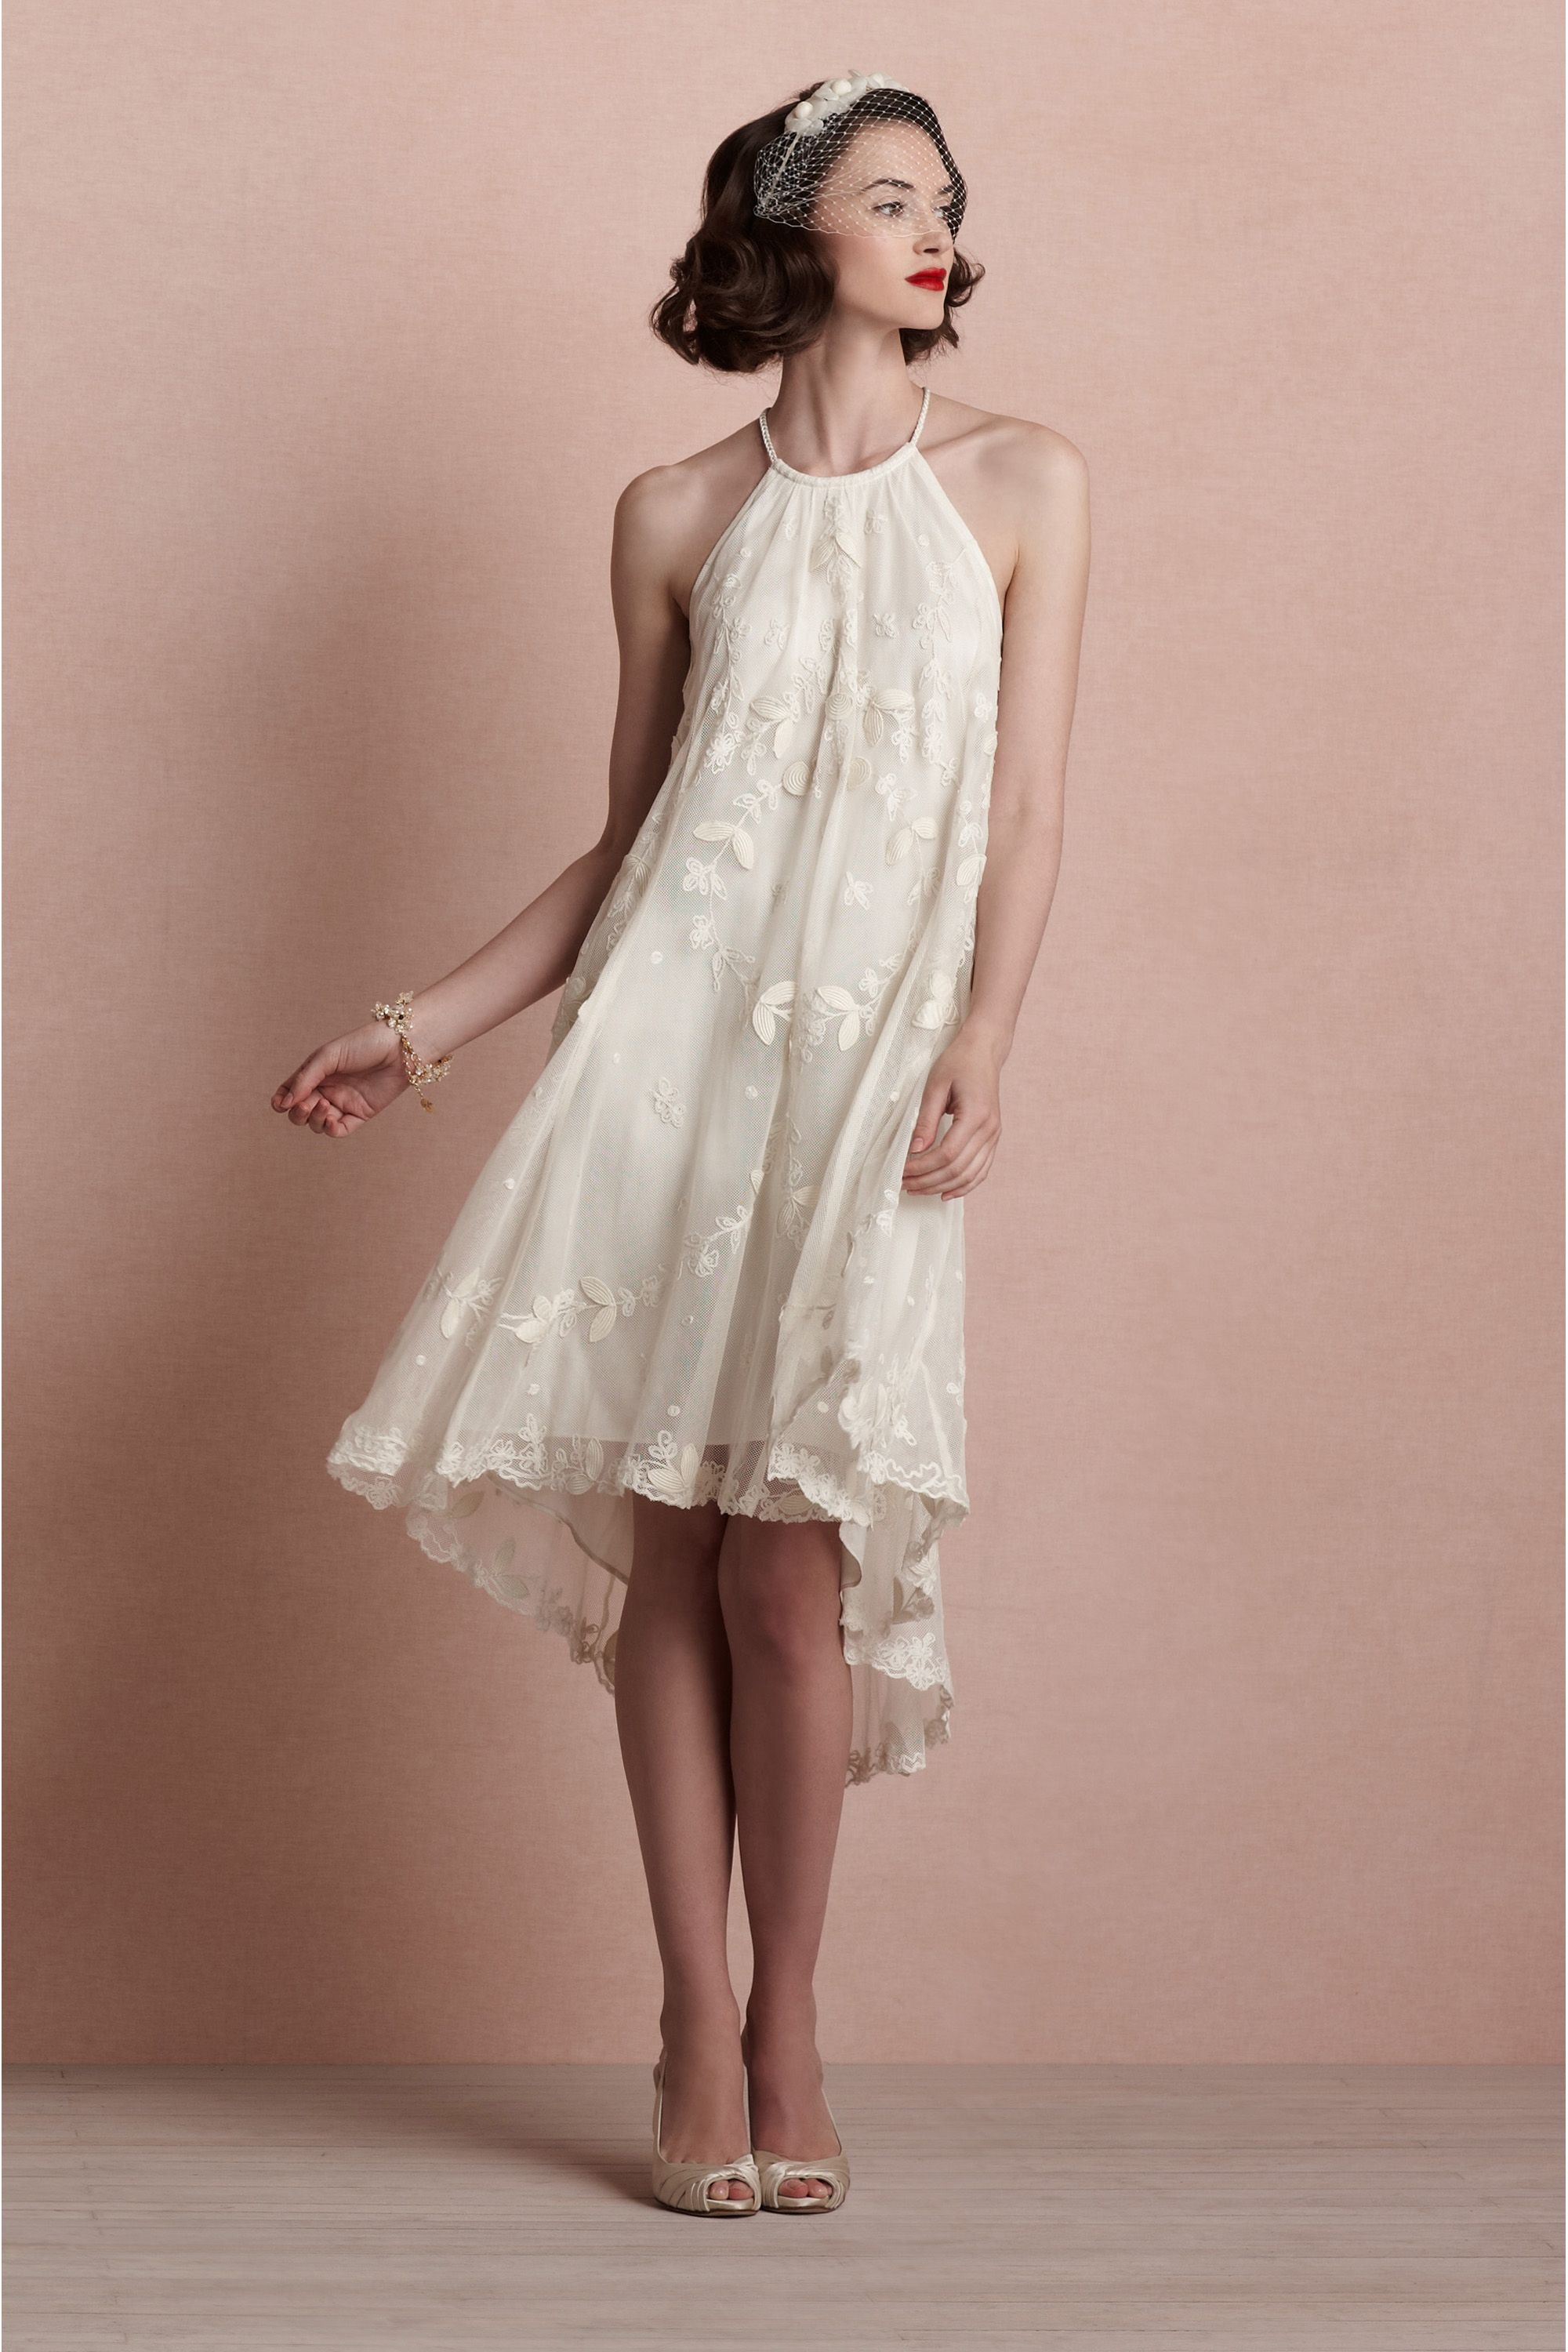 Surprising Anthropologie Style Wedding Dress Pictures Design Ideas ...